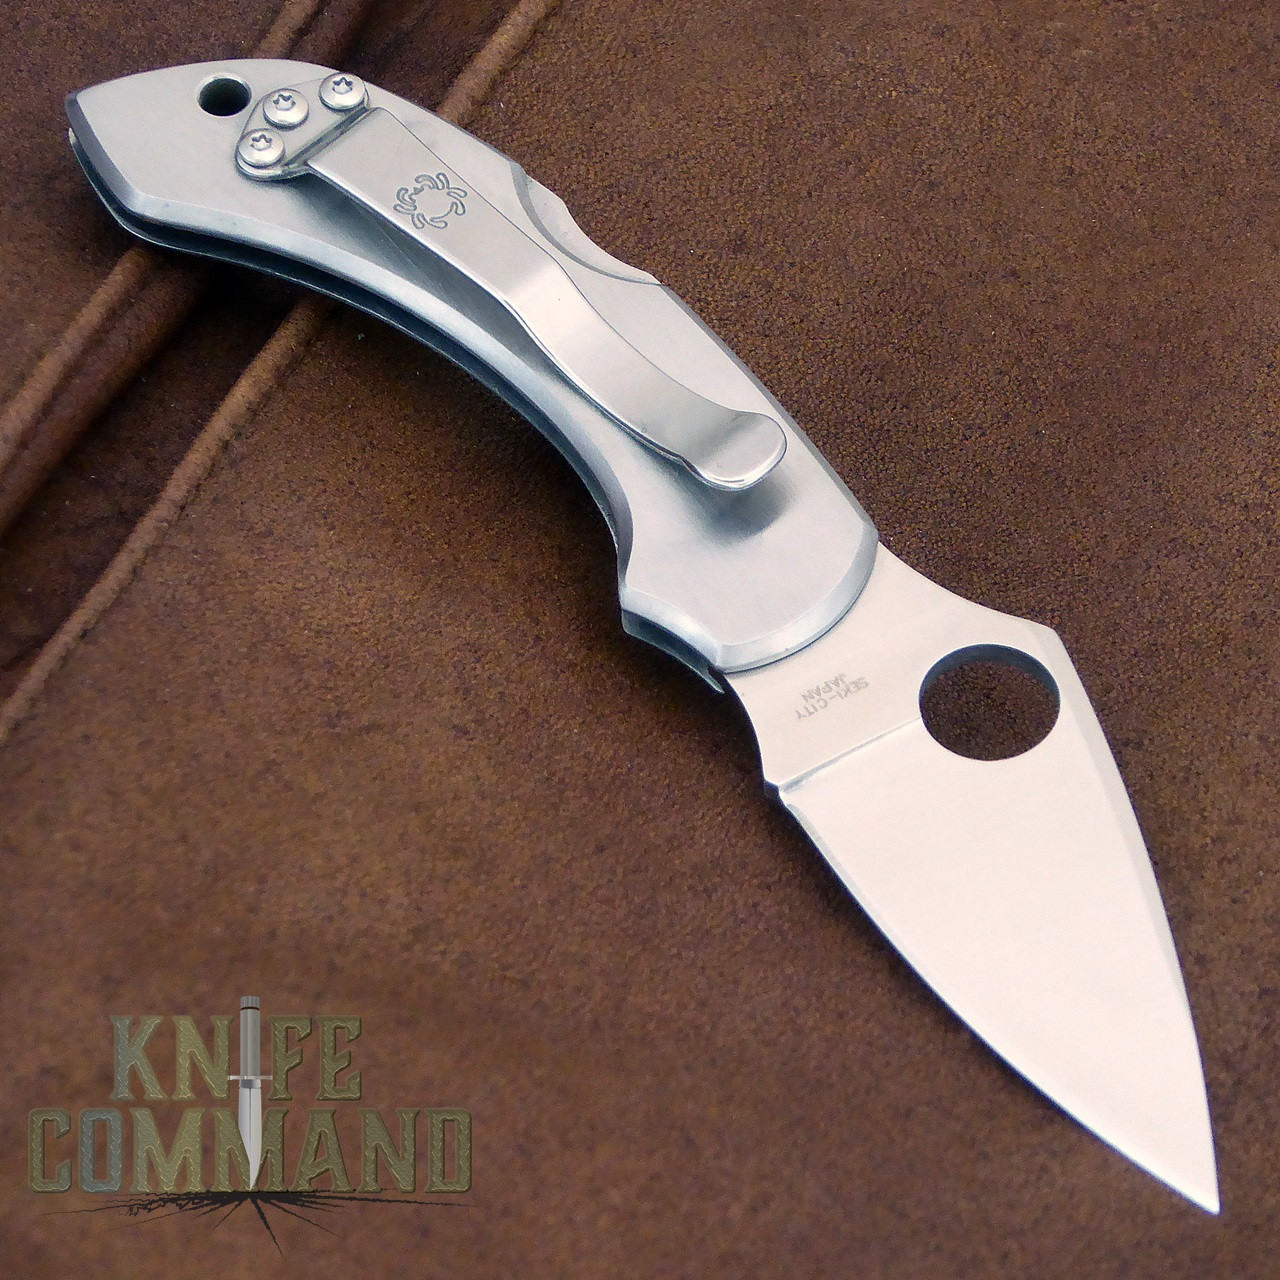 Spyderco Dragonfly Santa Fe Stoneworks Blue Line Special Knife.  Stainless steel knife with pocket clip.